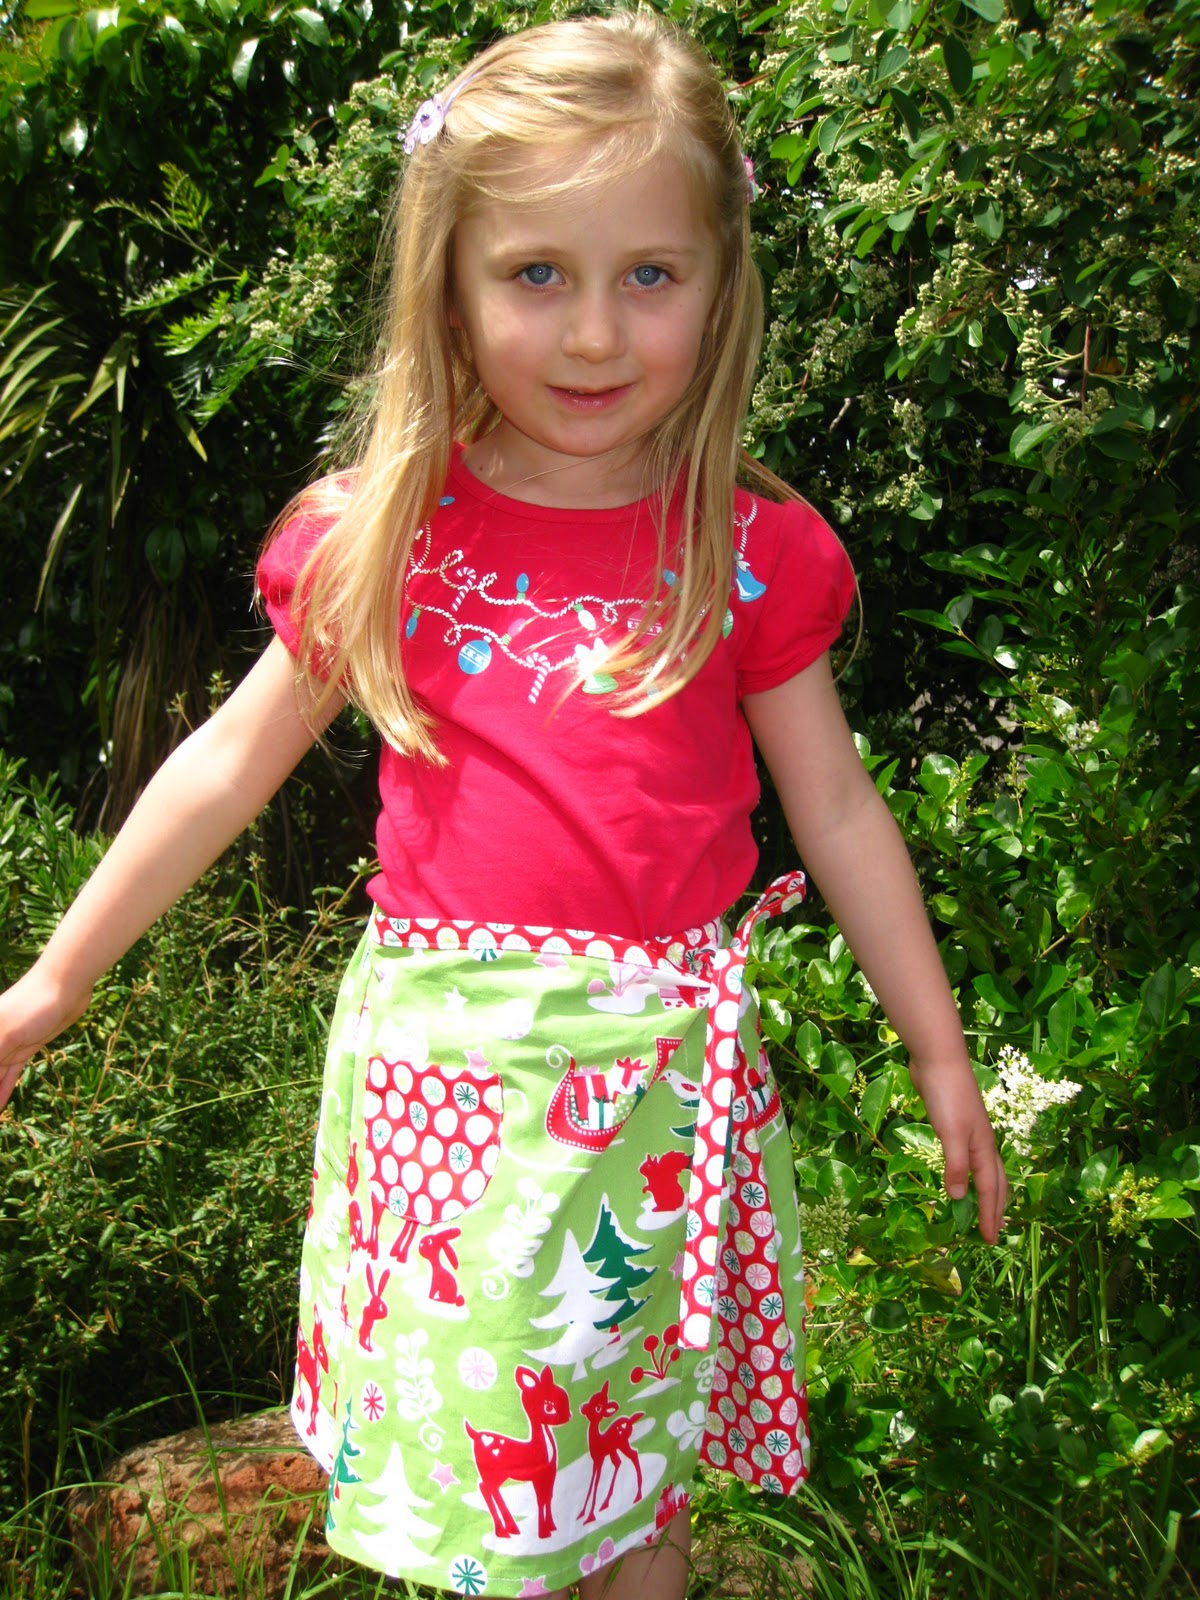 Handmade In A Beautiful Pea Green Boat: Christmas dresseslolly model